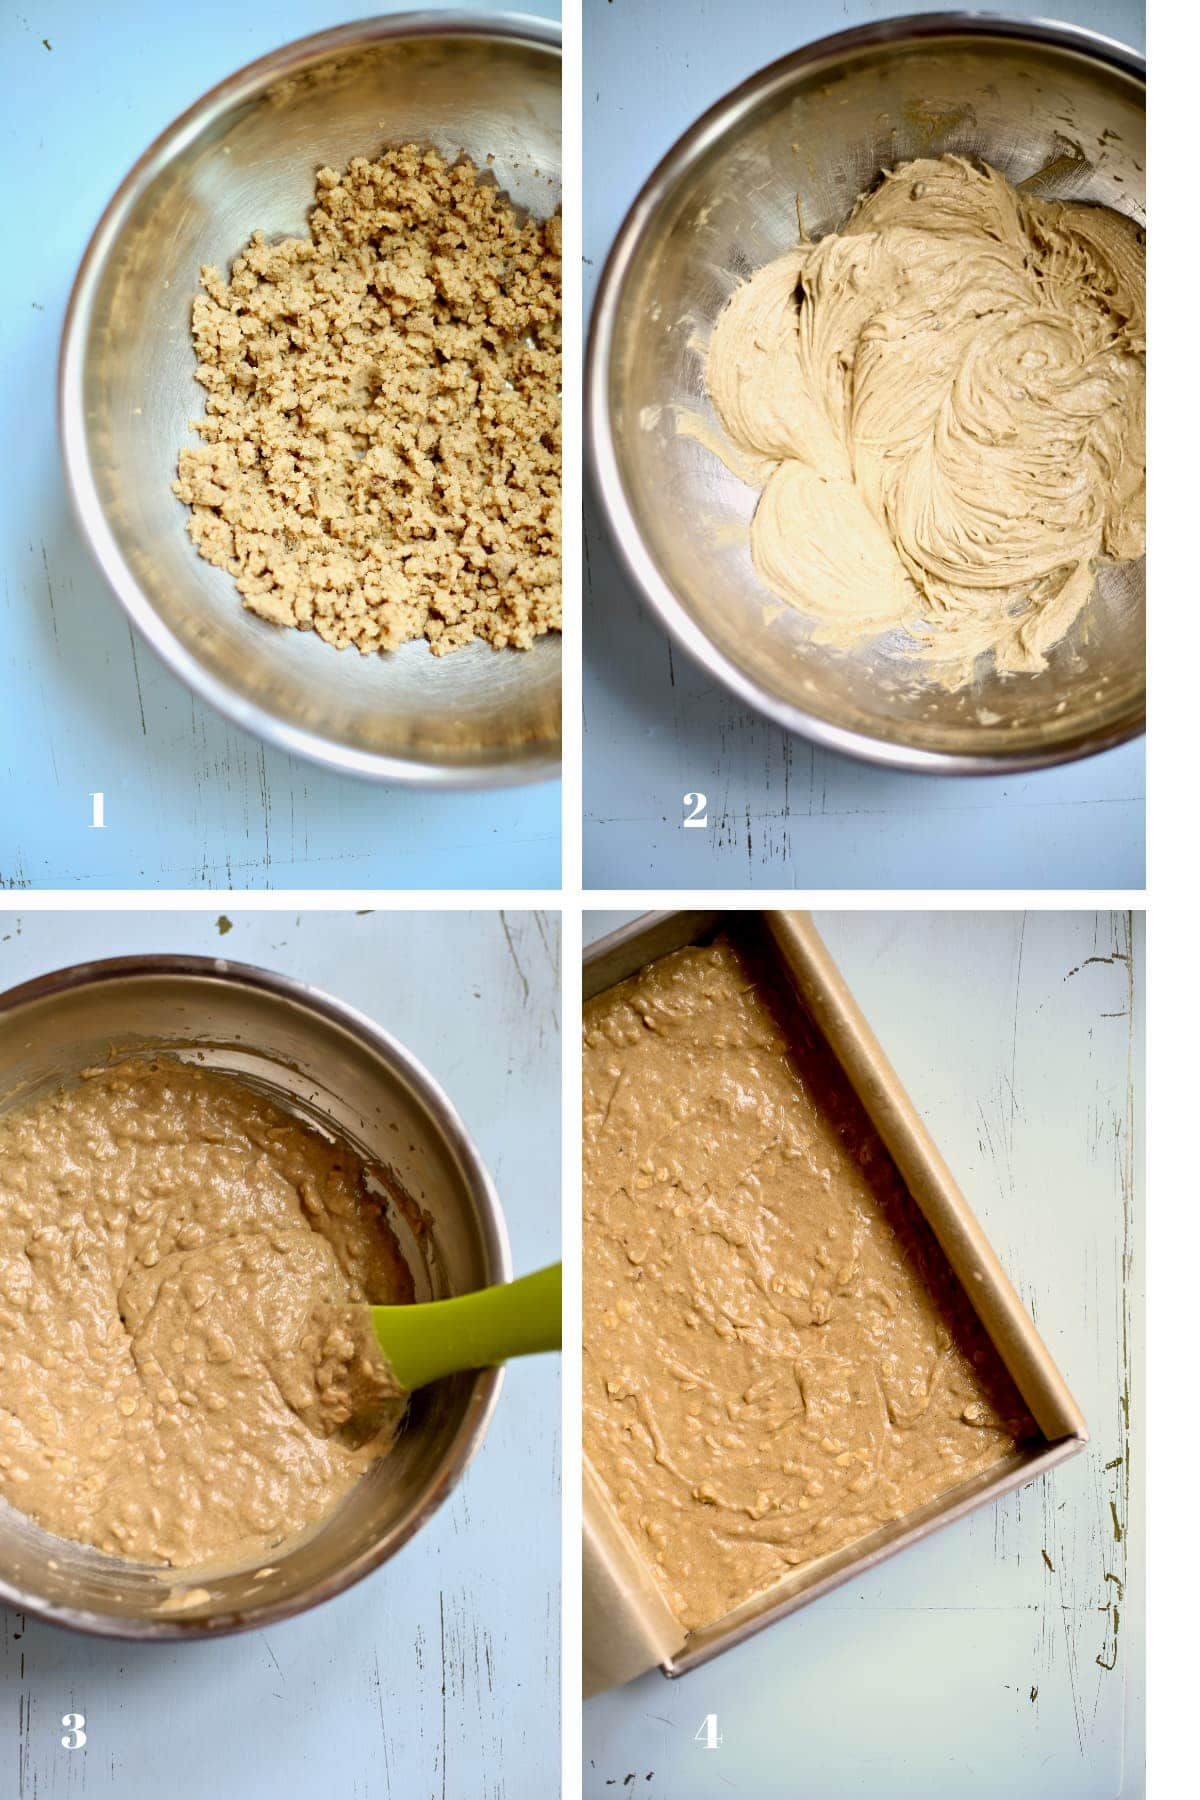 Four images of a fresh banana cake being made